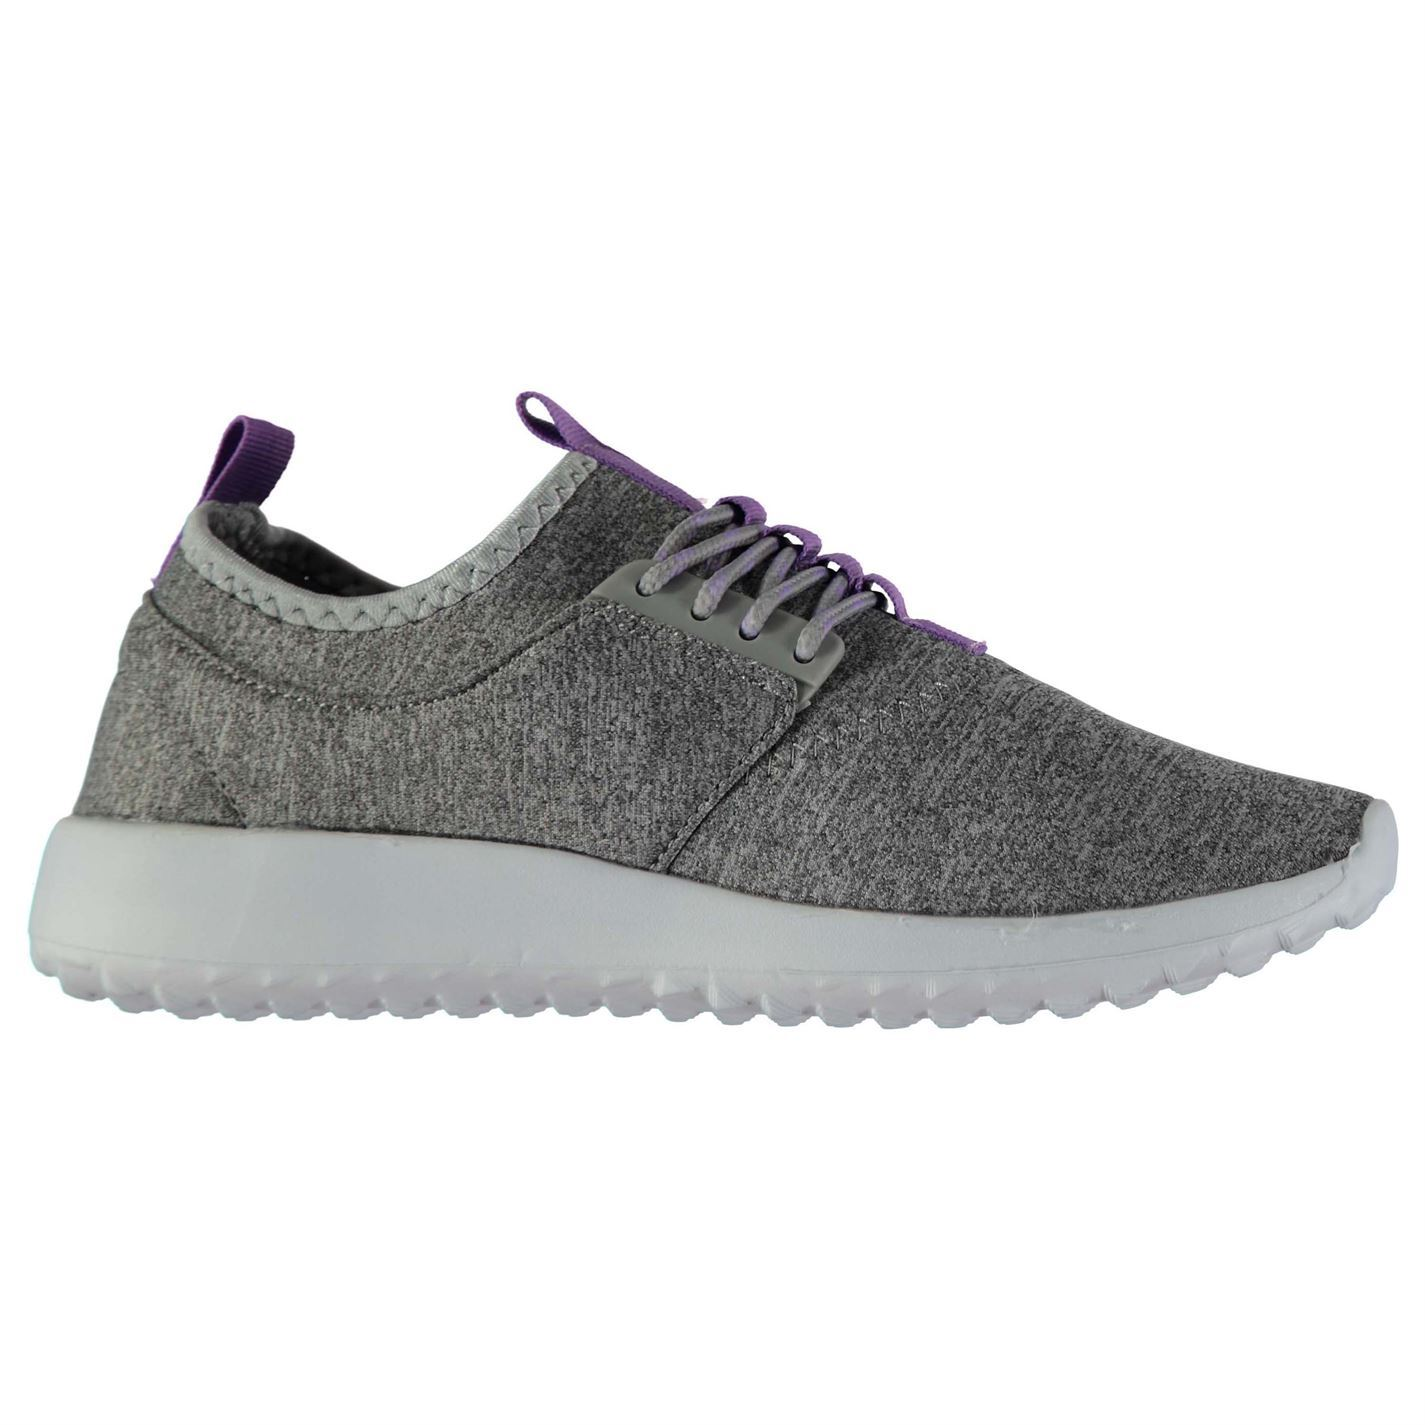 Womens Rock and Rags Lace Up Trainers Runners Lightweight New